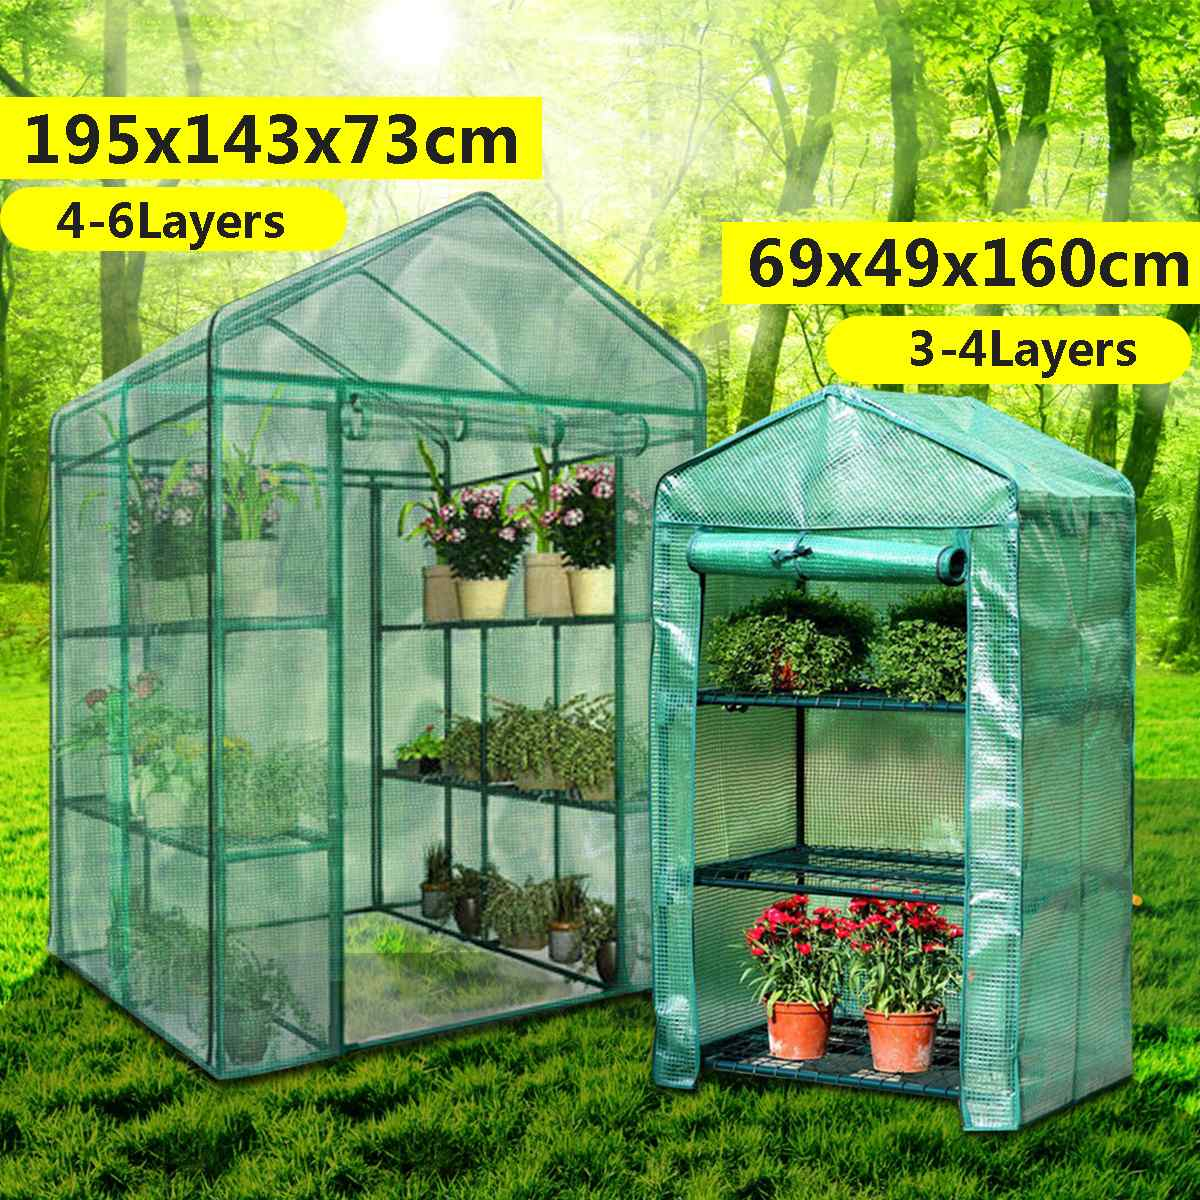 Roof Garden Greenhouse House Flower Plant Keep Warm Shelf Shed Durable Portable PVC Plastic Cover Roll-up Zipper Outdoor BreathRoof Garden Greenhouse House Flower Plant Keep Warm Shelf Shed Durable Portable PVC Plastic Cover Roll-up Zipper Outdoor Breath